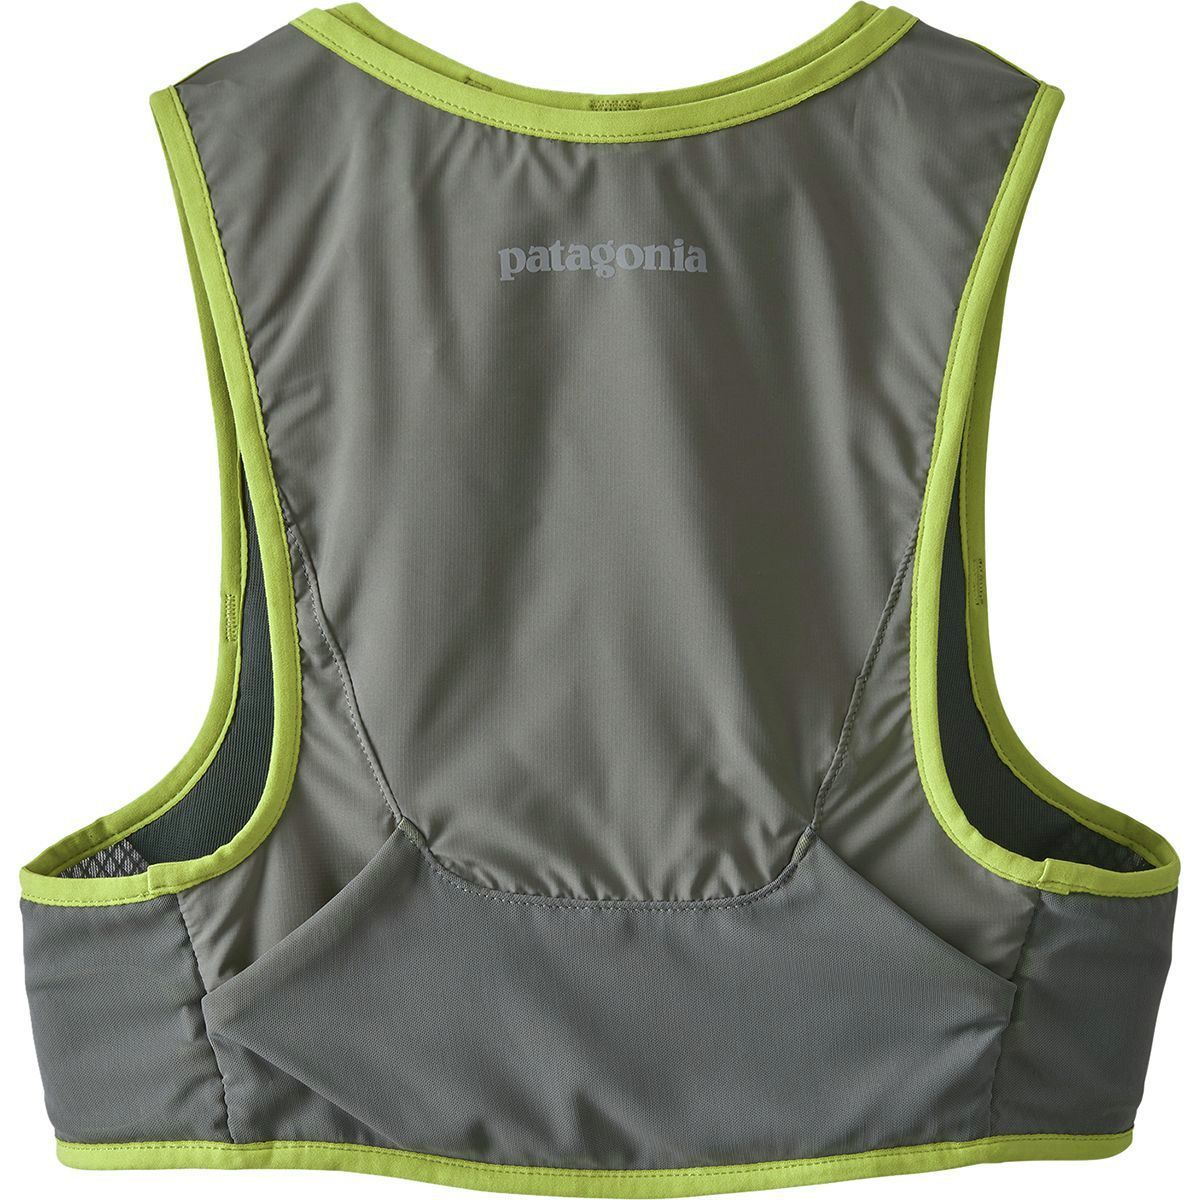 photo: Patagonia Slope Runner Vest 4L hydration pack